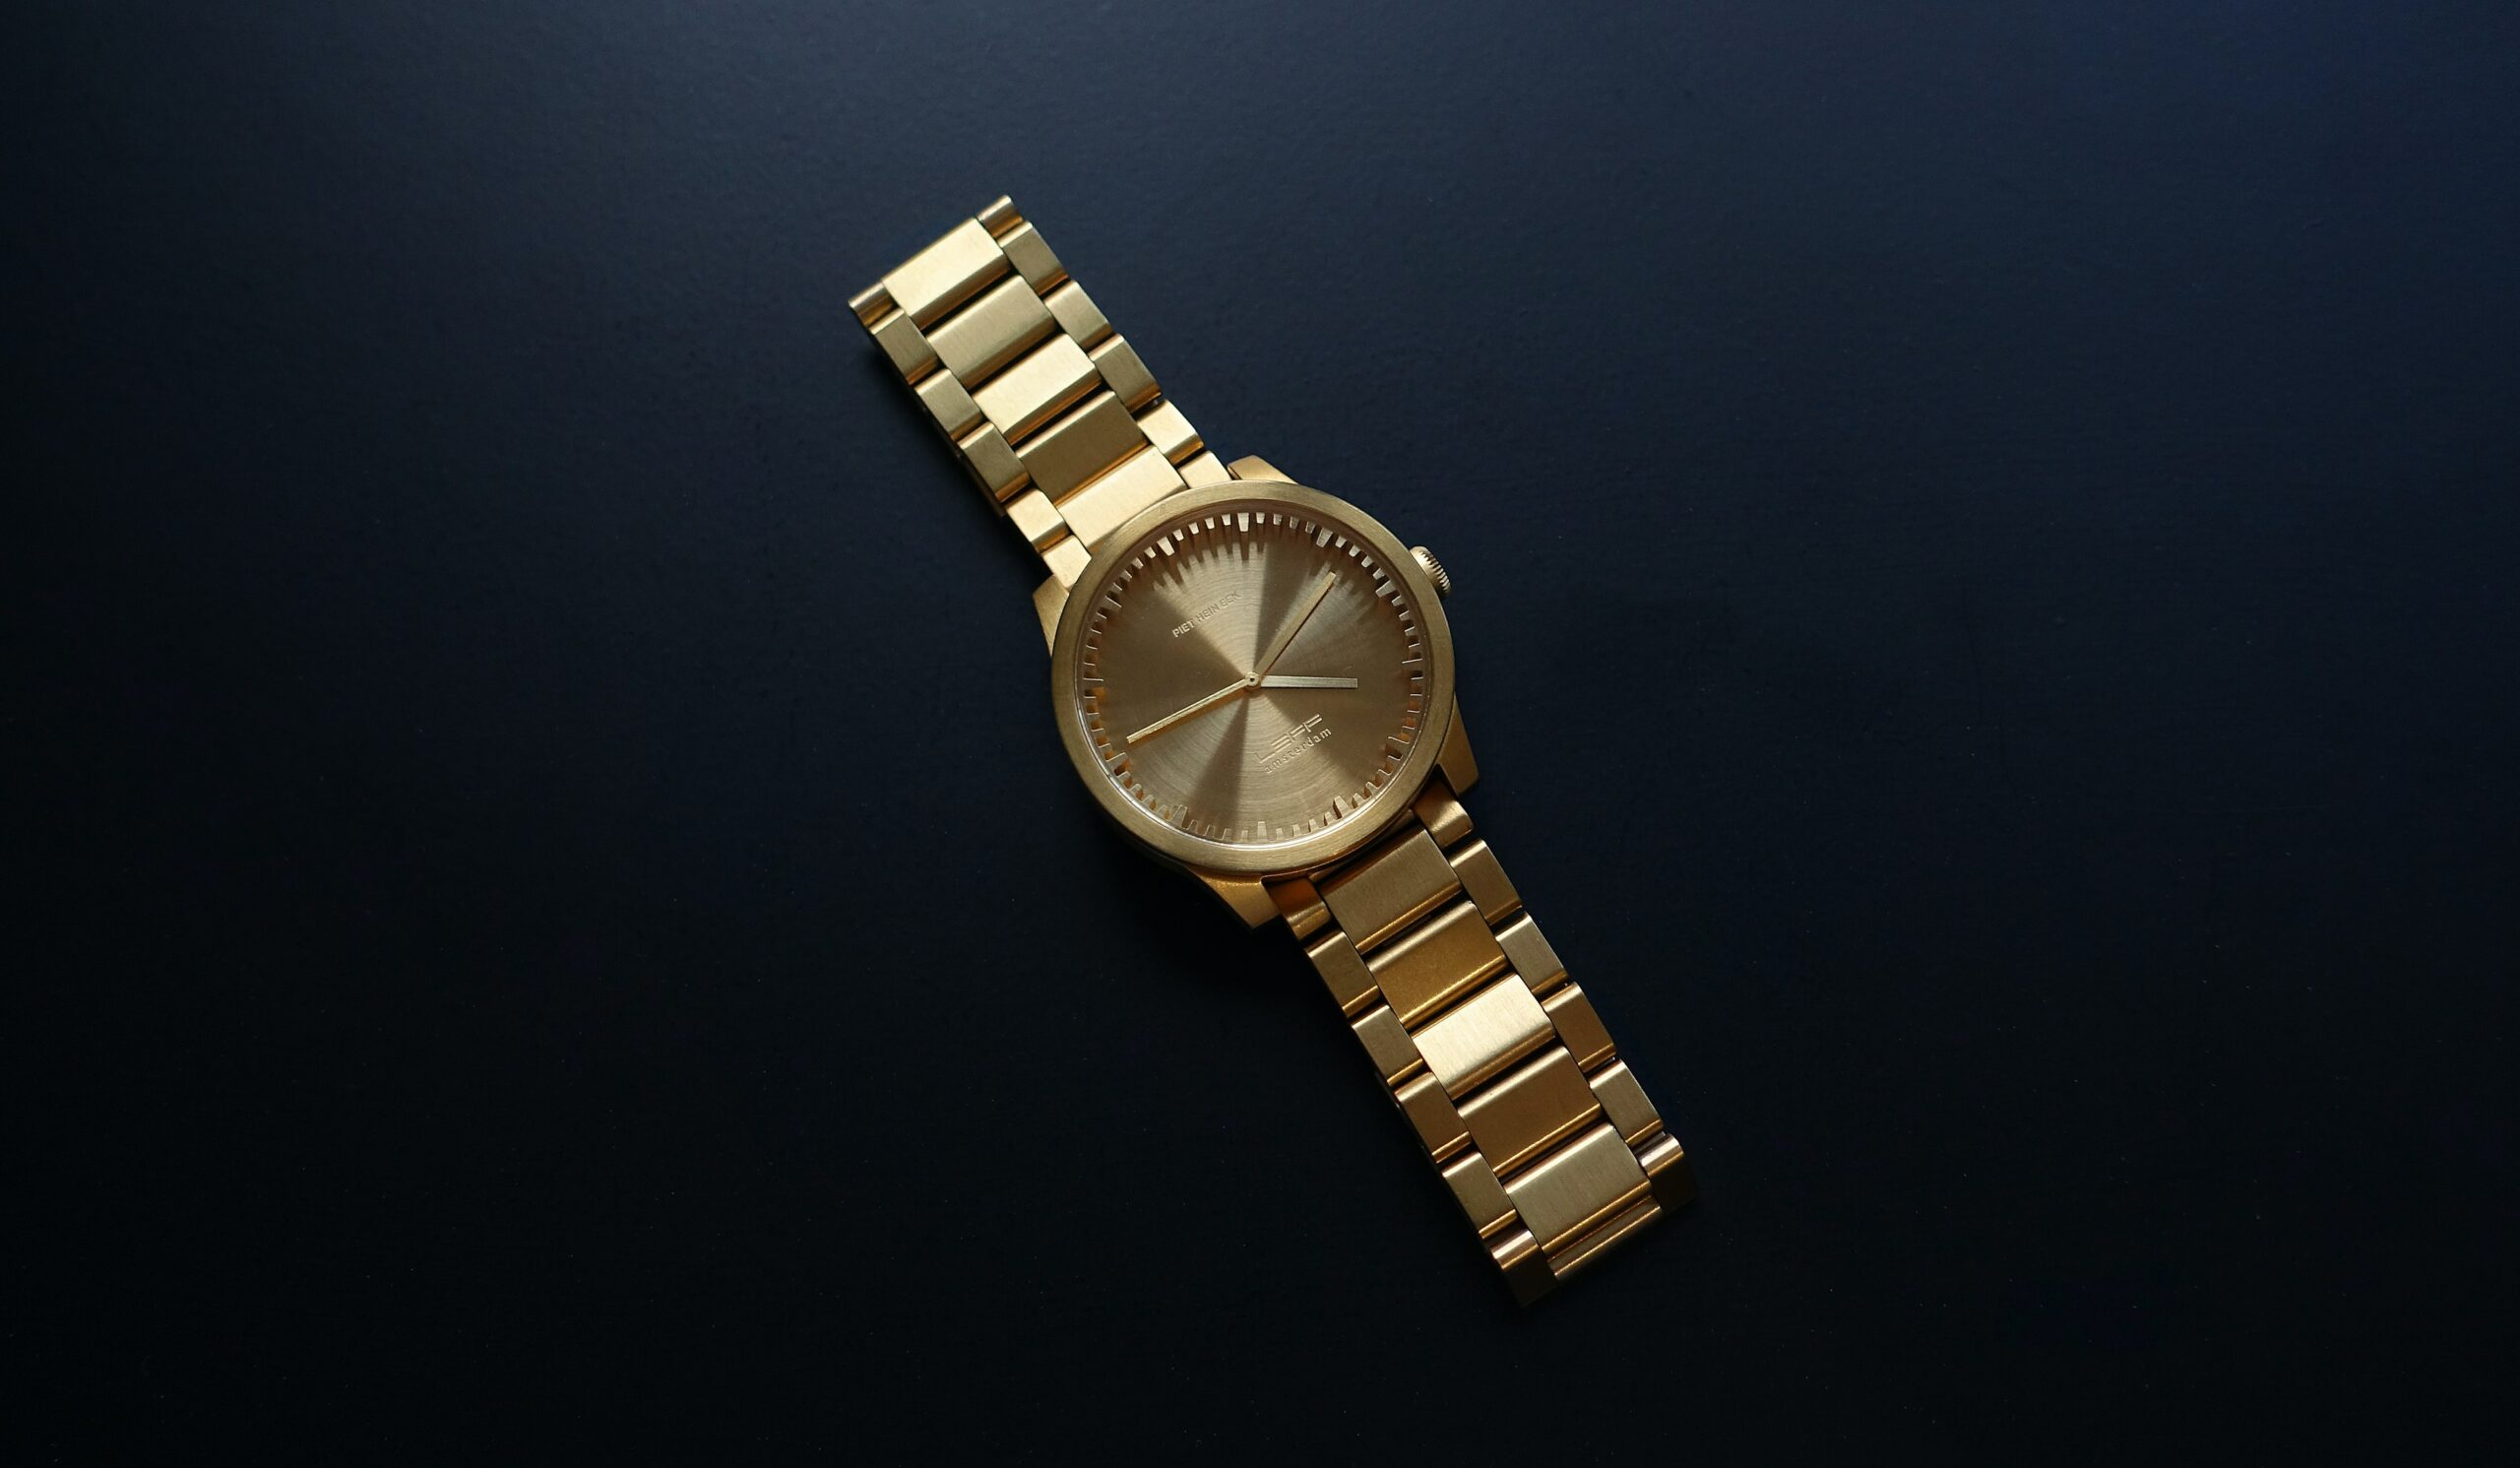 11 Top Entry Level Luxury Watches (Ultimate Guide)